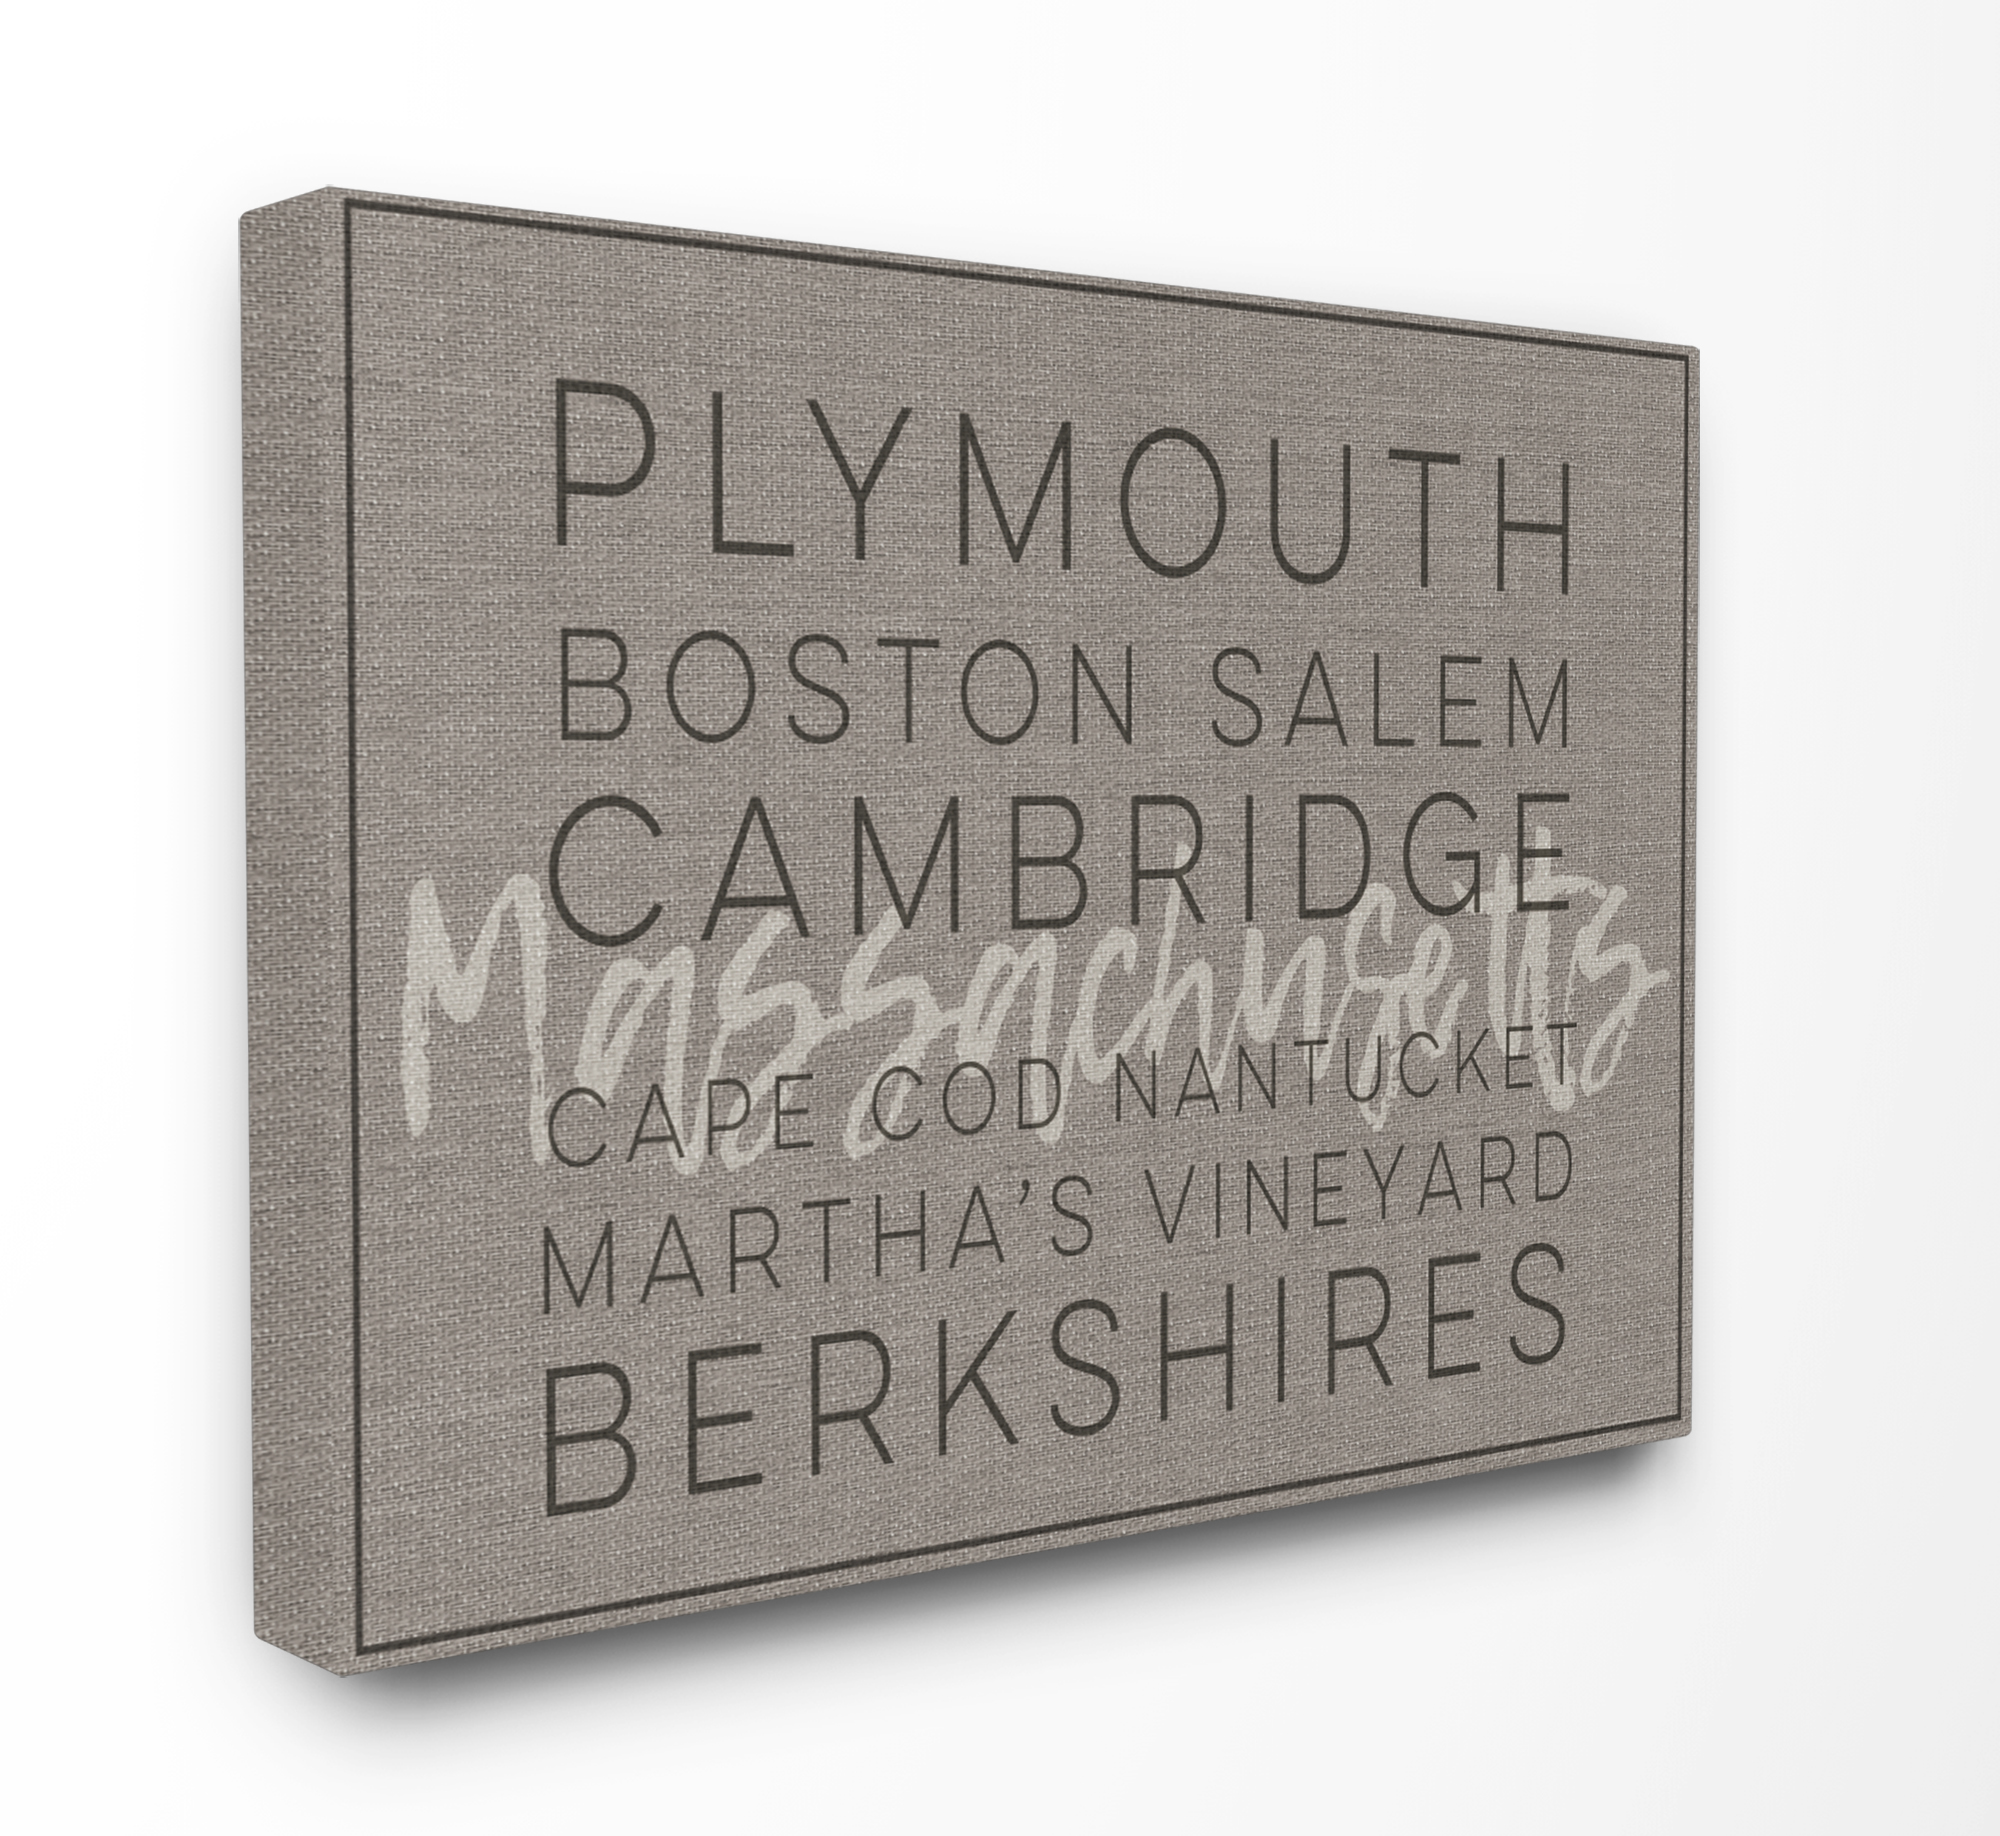 The Stupell Home Decor Collection Massachusetts Berkshires Boston Salem Typography Stretched Canvas Wall Art, 16 x 1.5 x 20